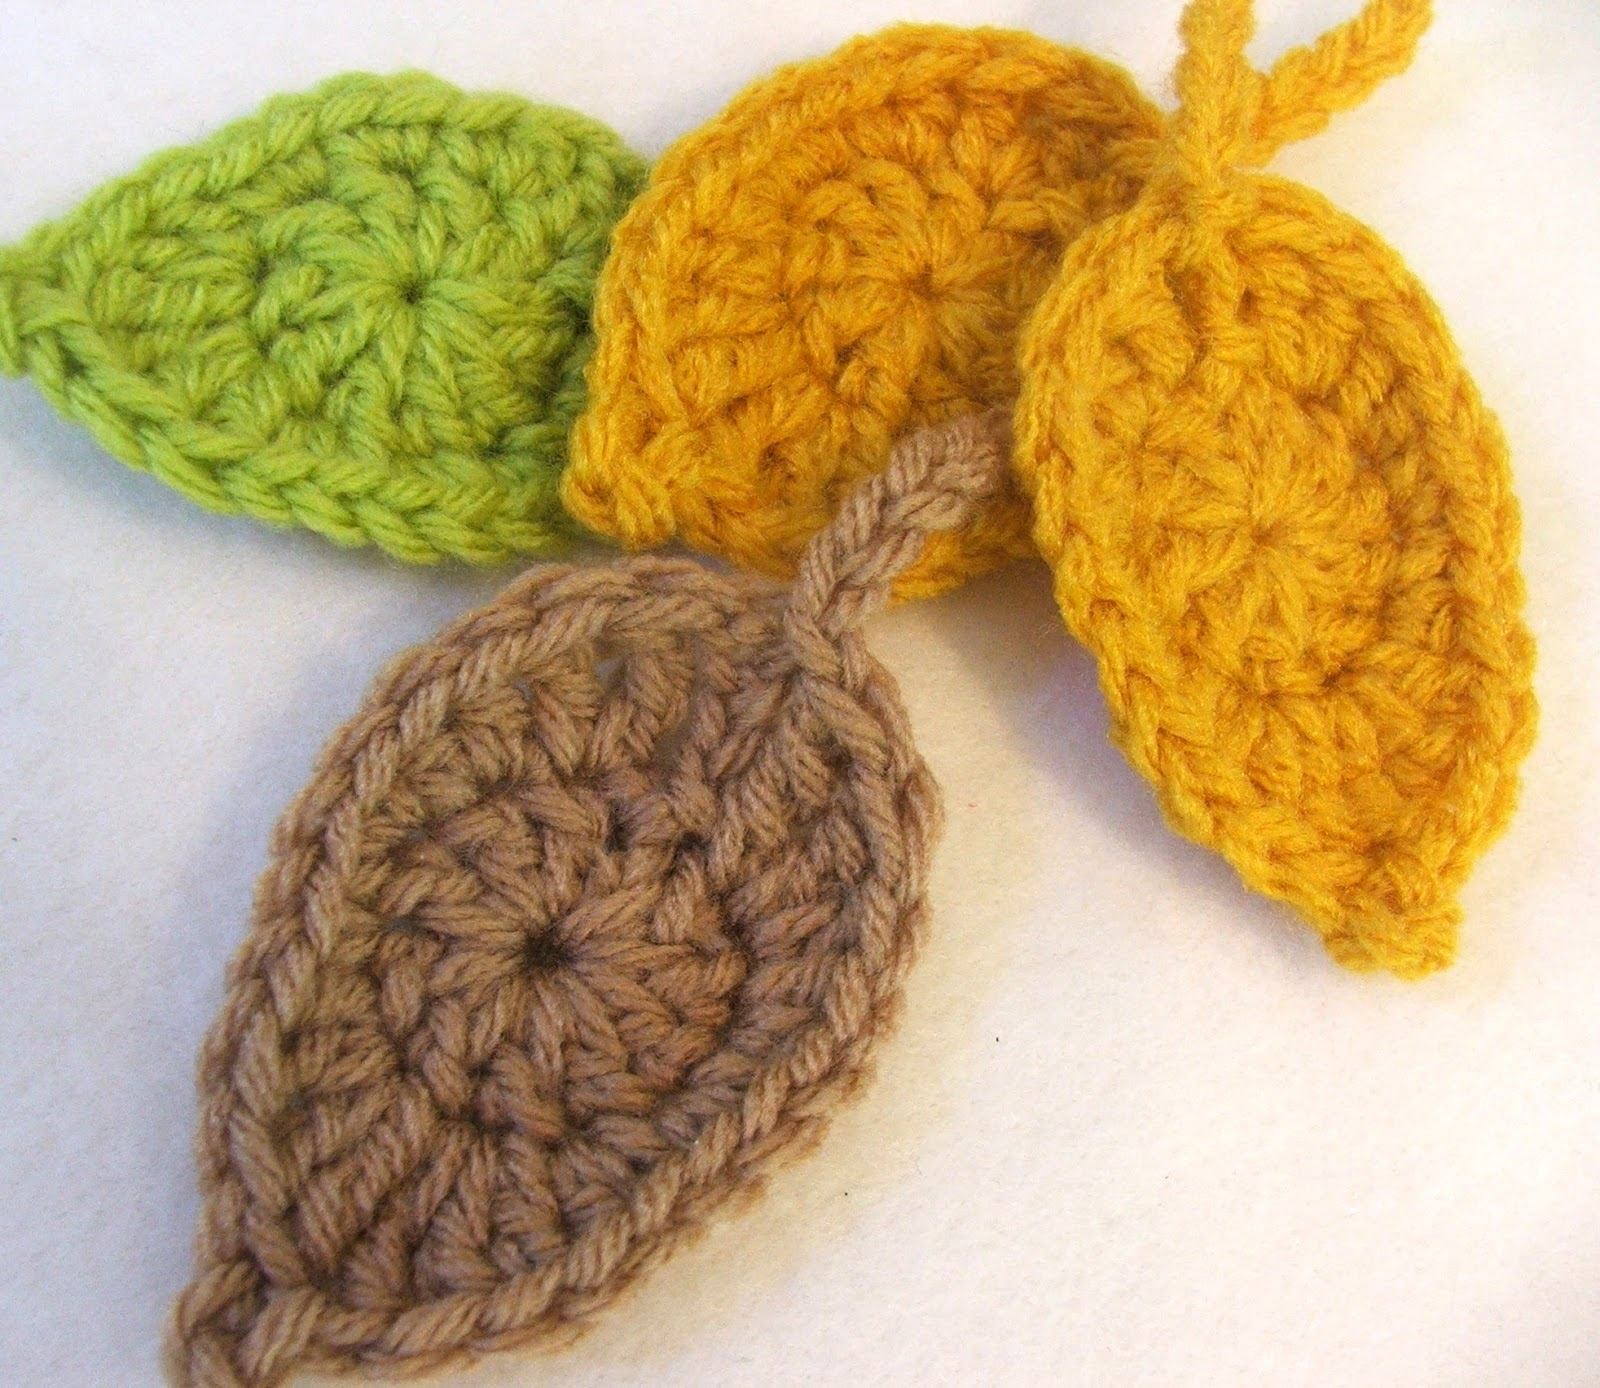 Free Crochet Pattern For Hemp Leaf : Susans Hippie Crochet: Free Simple Leaf Crochet Pattern ...